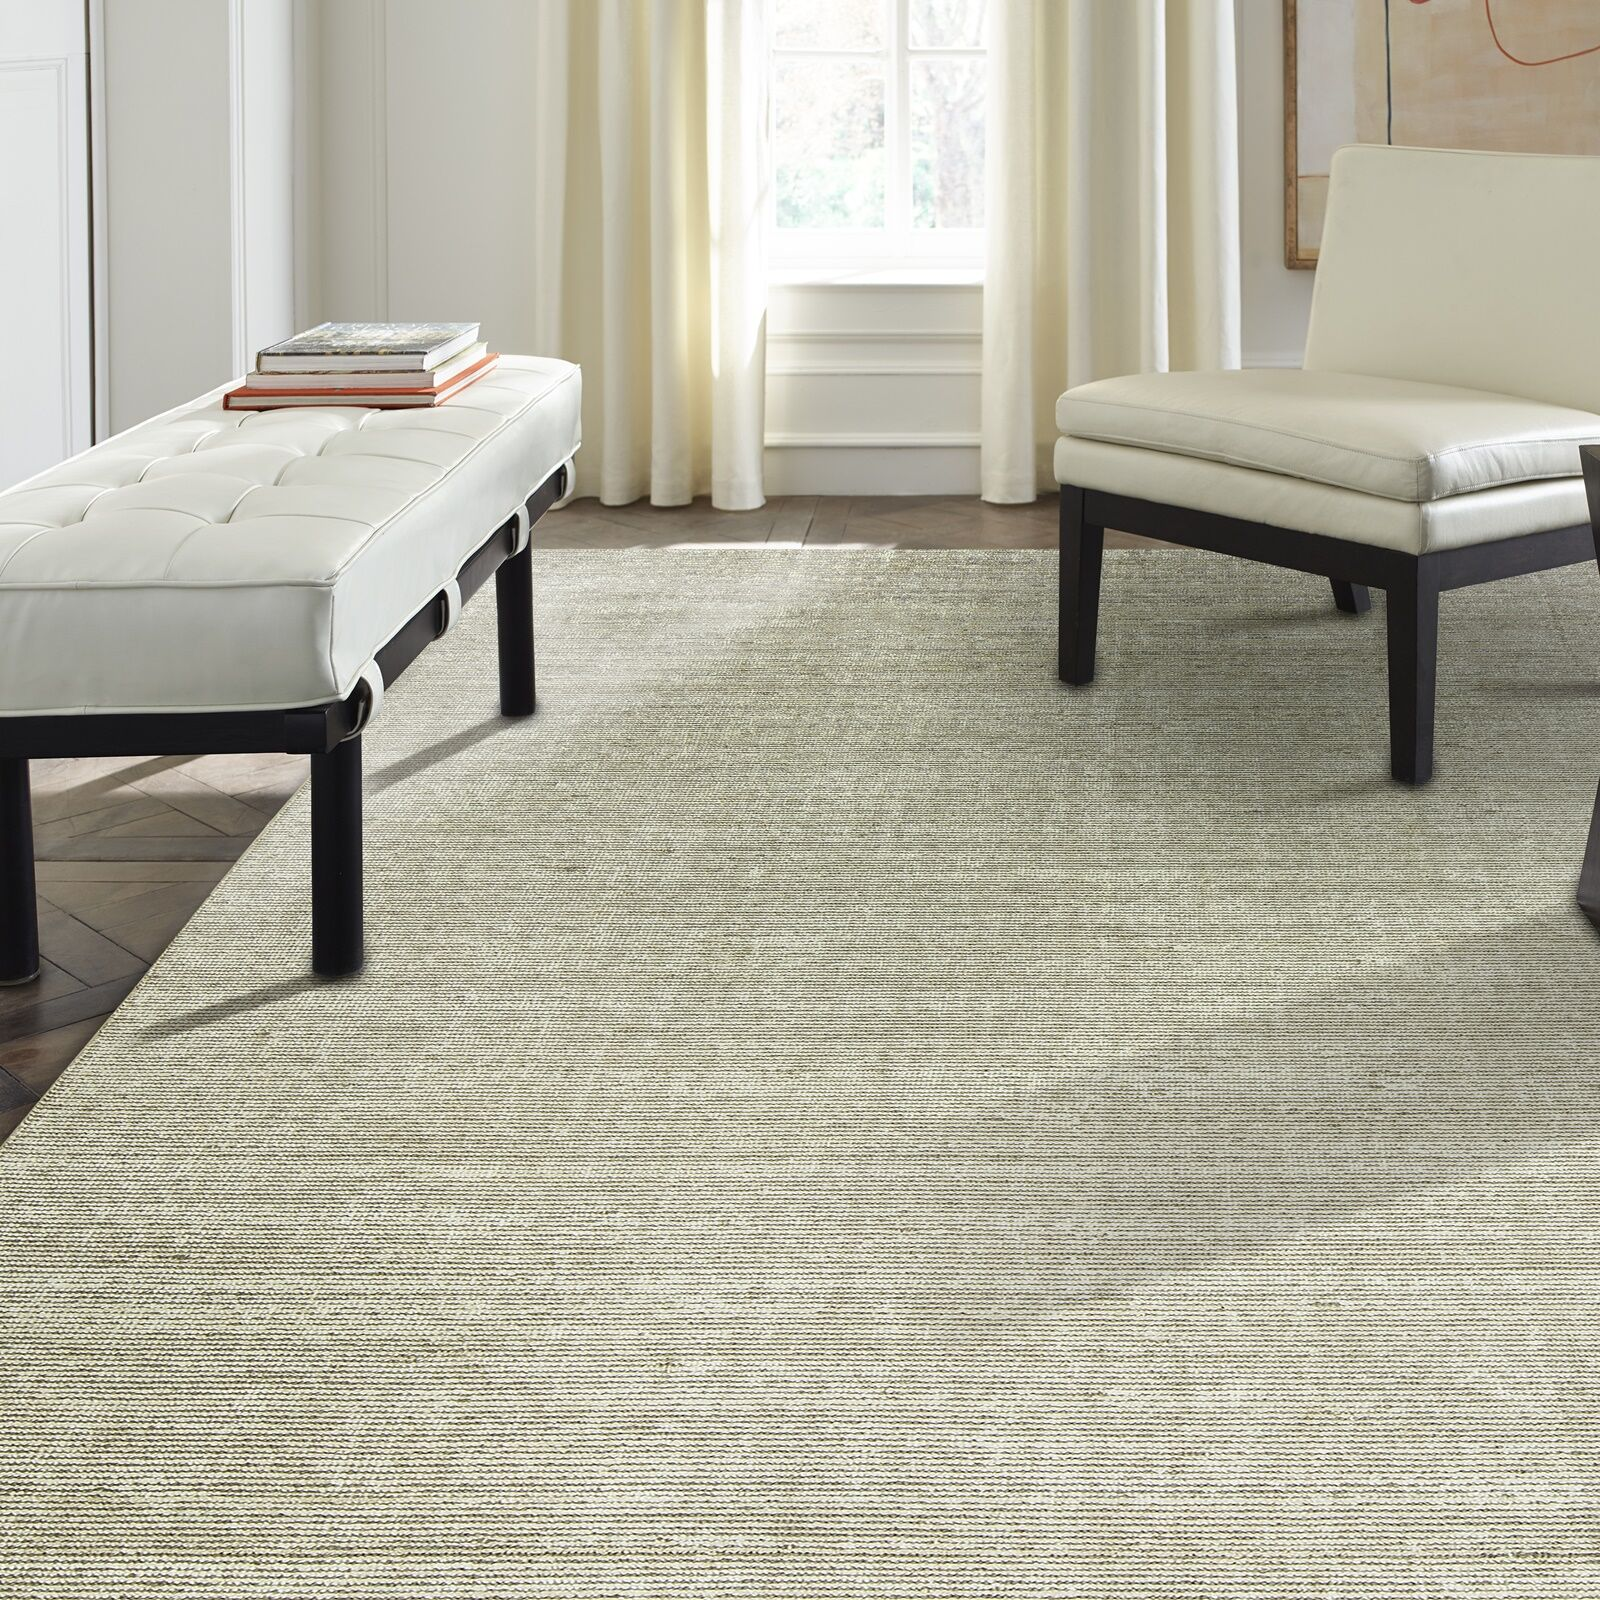 Gainer Nickel Hand-Woven Gray Area Rug Rug Size: 3'6